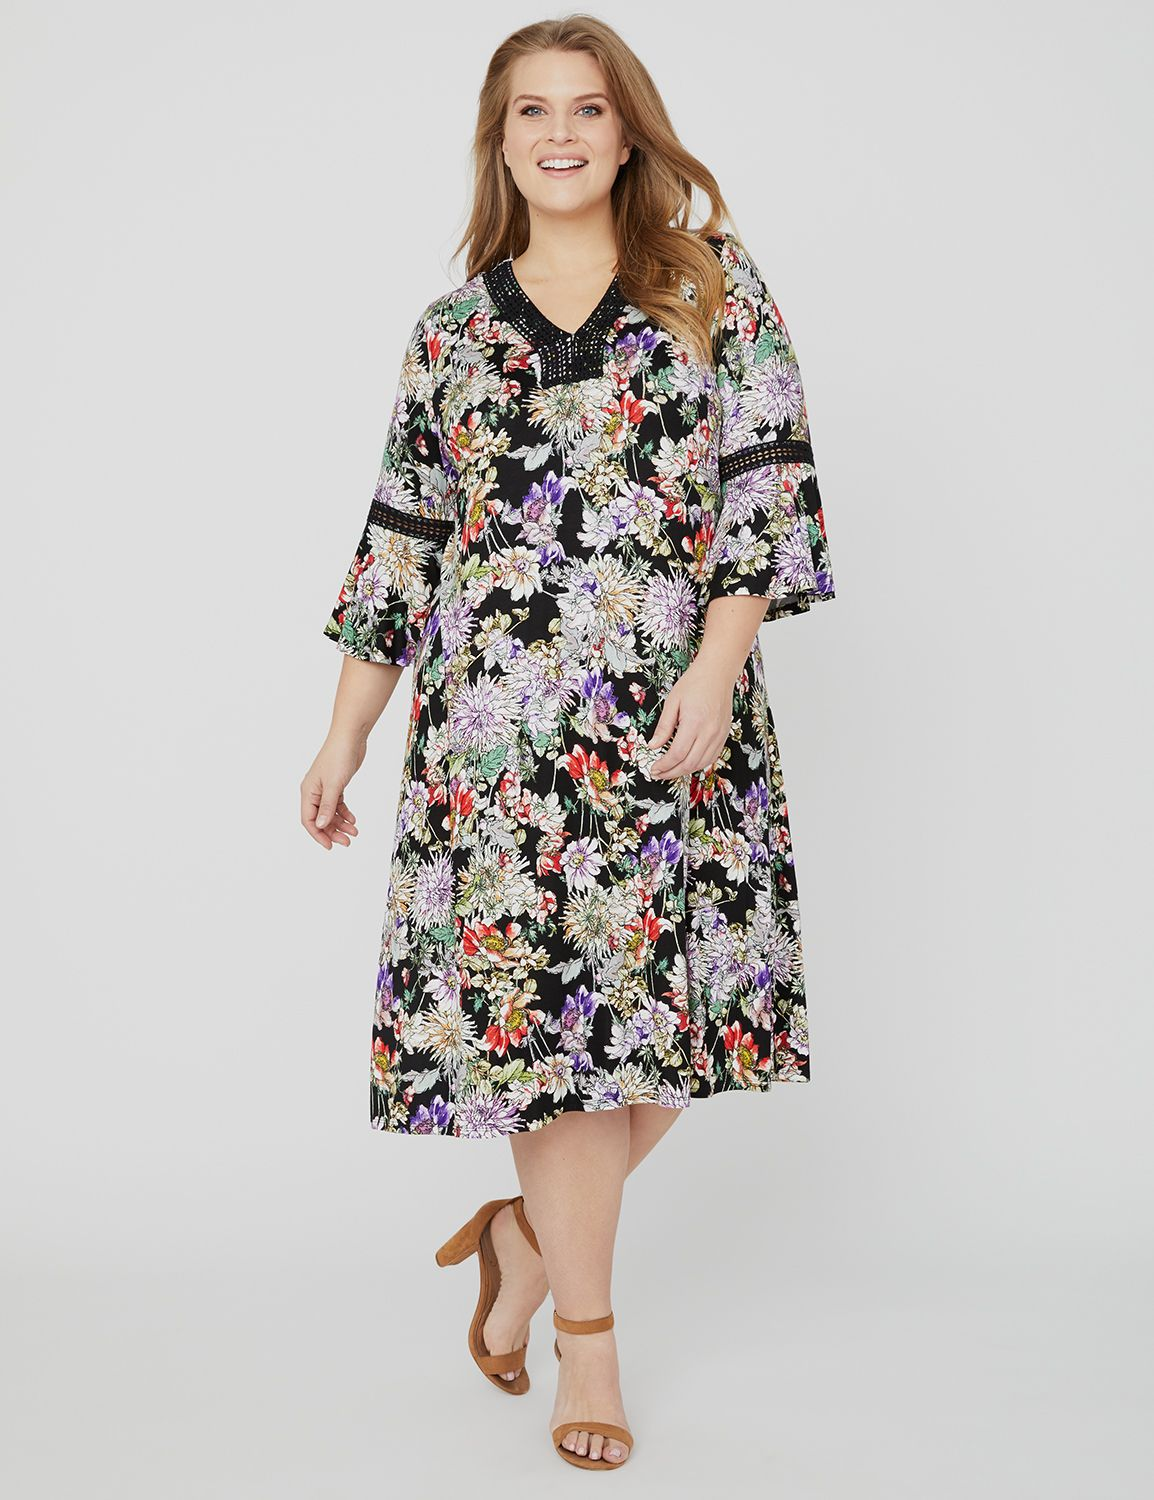 Floral Meadow Dress 1092650 Spense Floral Print Dress w MP-300102325